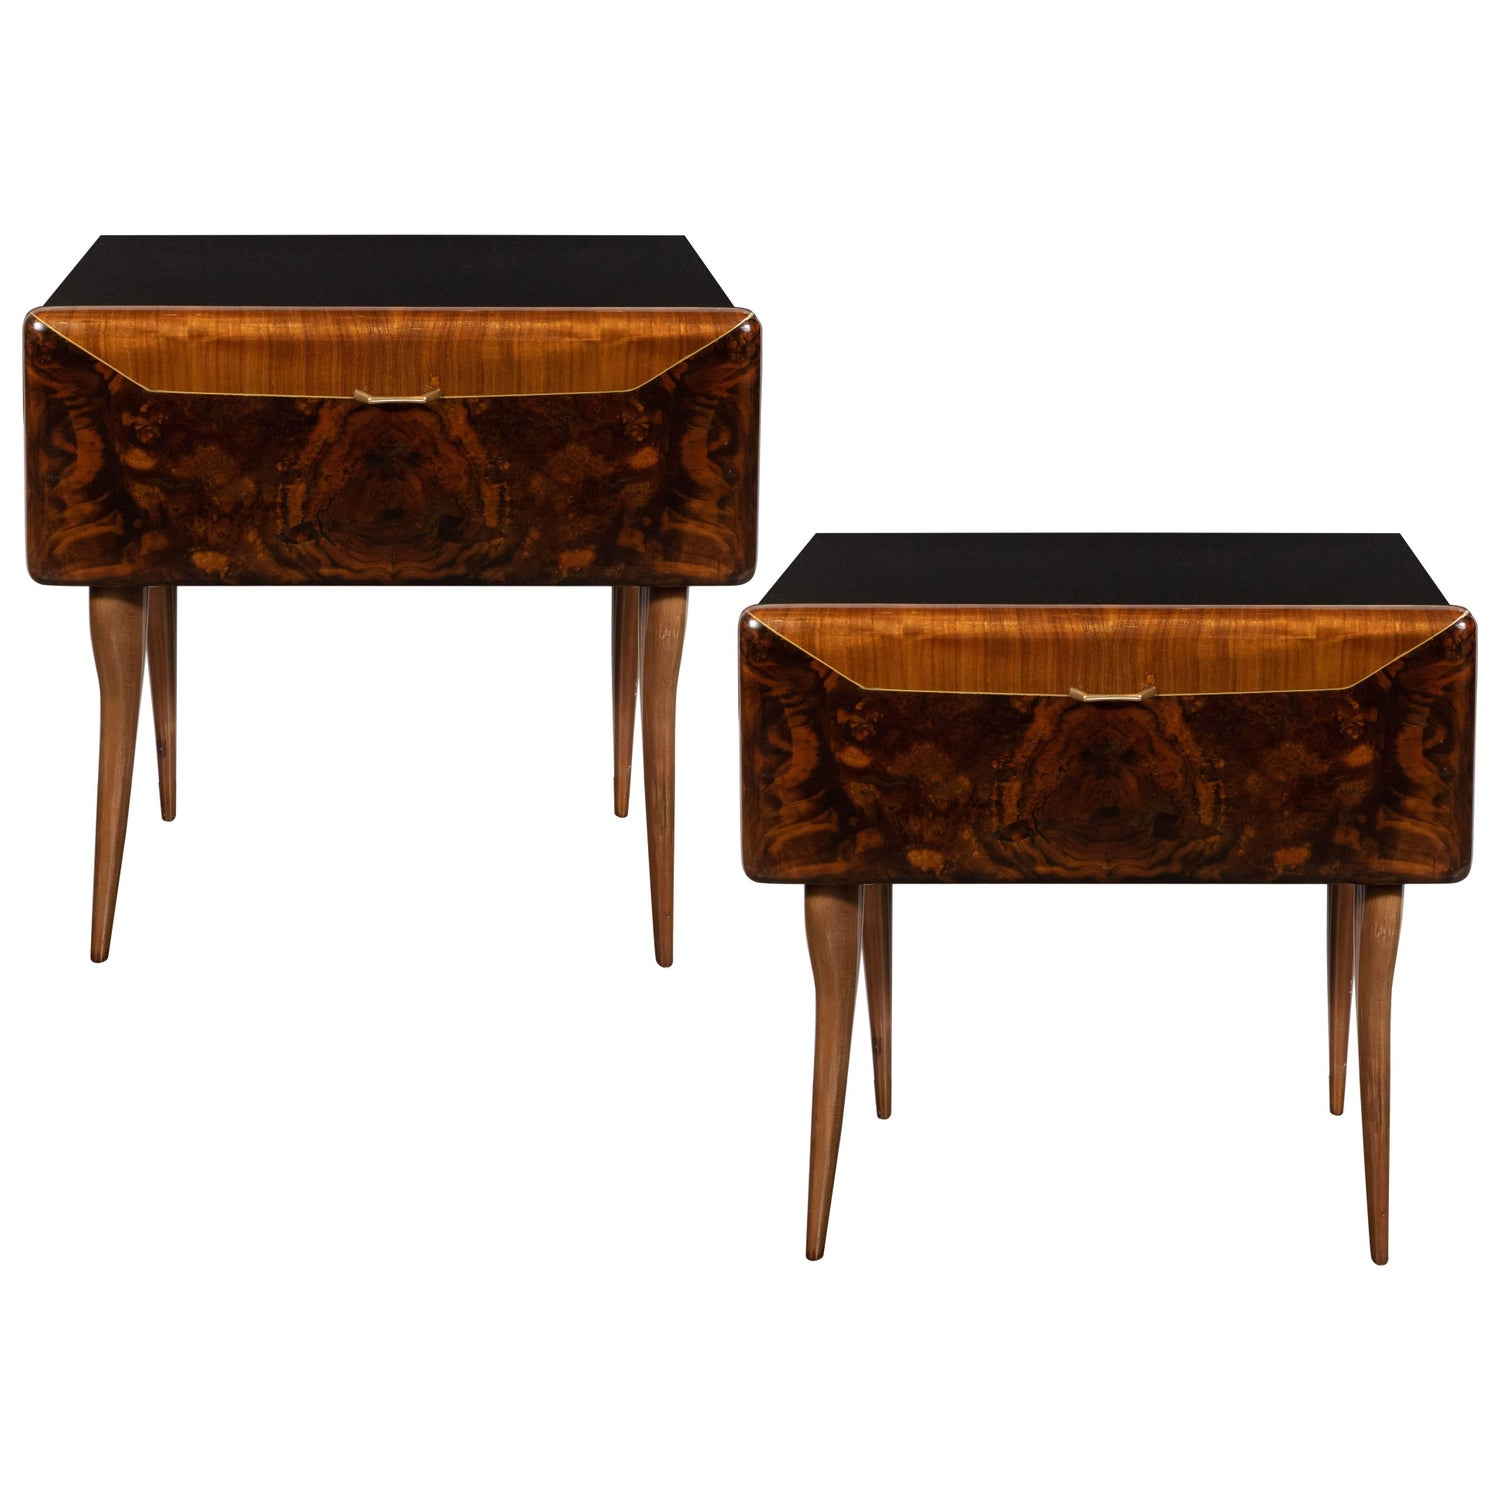 Pair Of Wall Mounted Mahogany Trapezoidal Bedside Tables, Italy, 1950S For